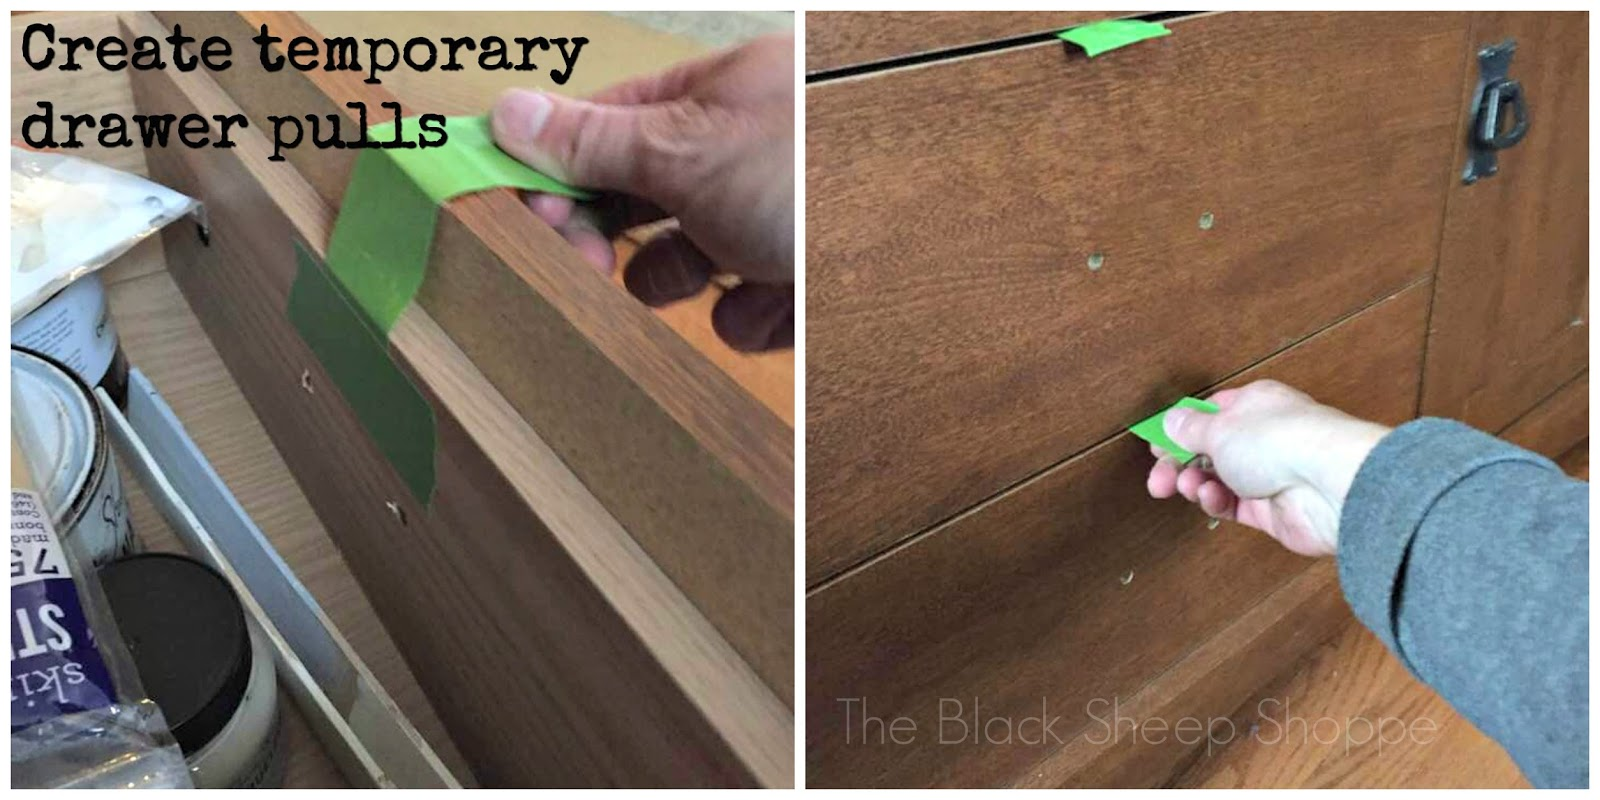 Create temporary drawer pulls with tape